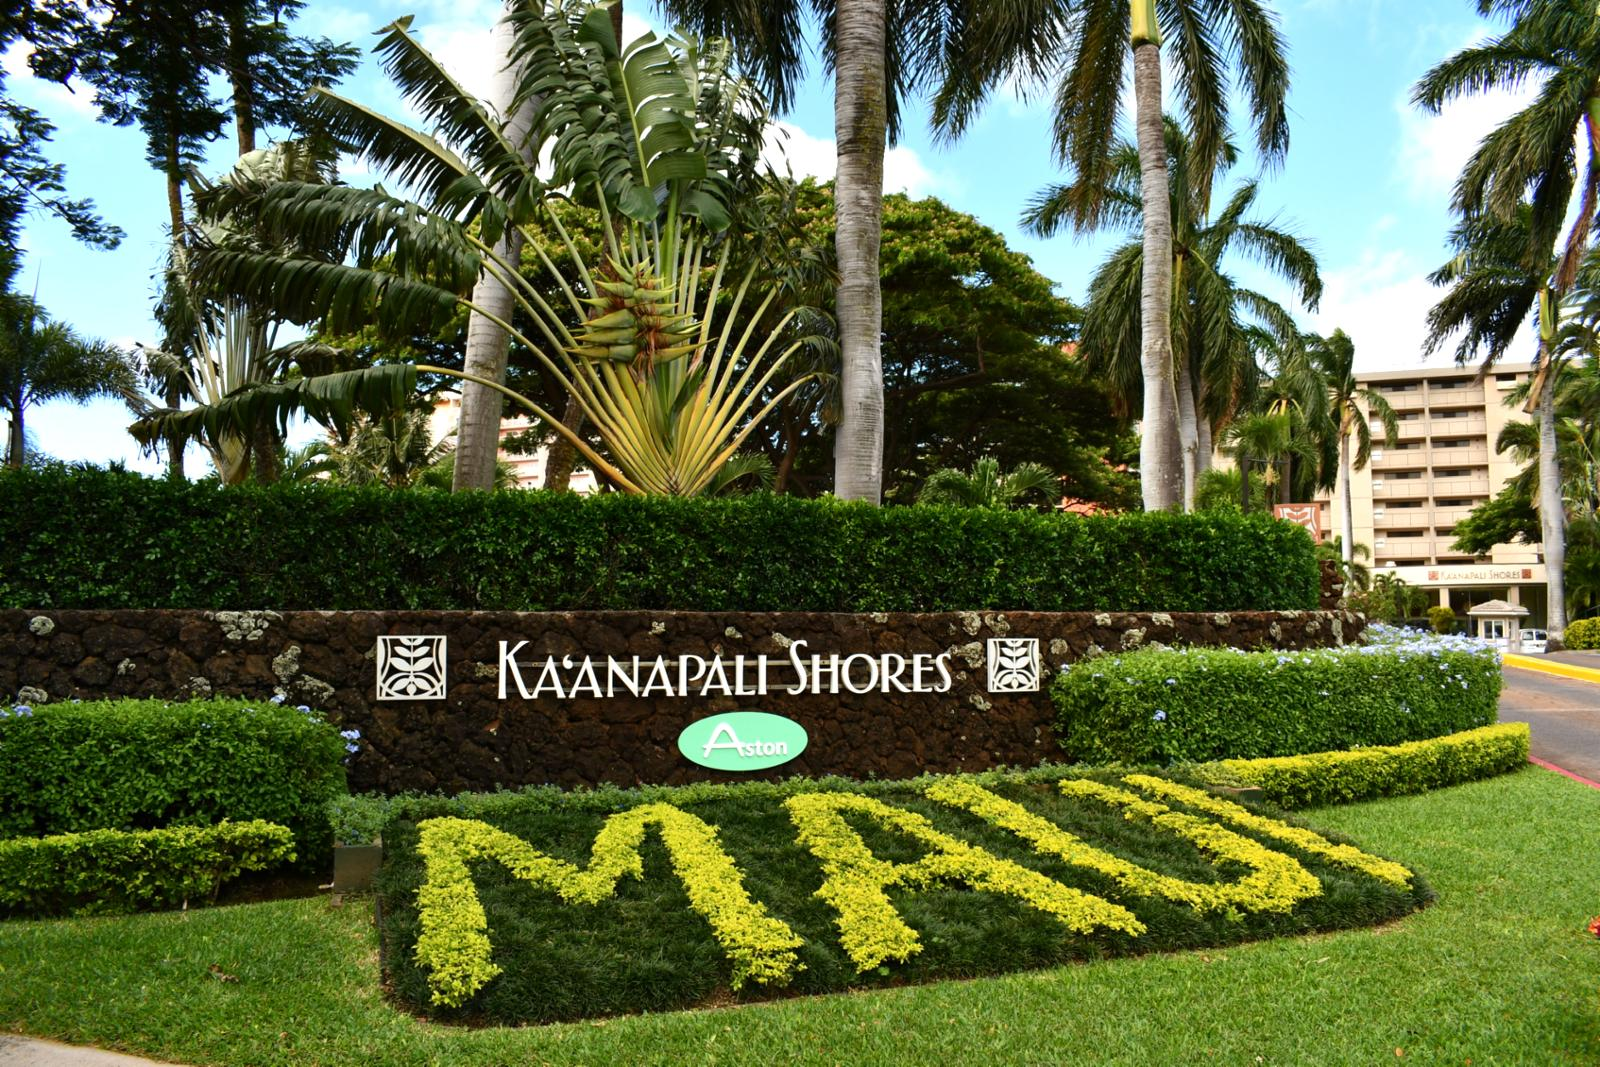 Welcome to Kaanapali Shores! Located at the world famous Kaanapali Beach, Maui!